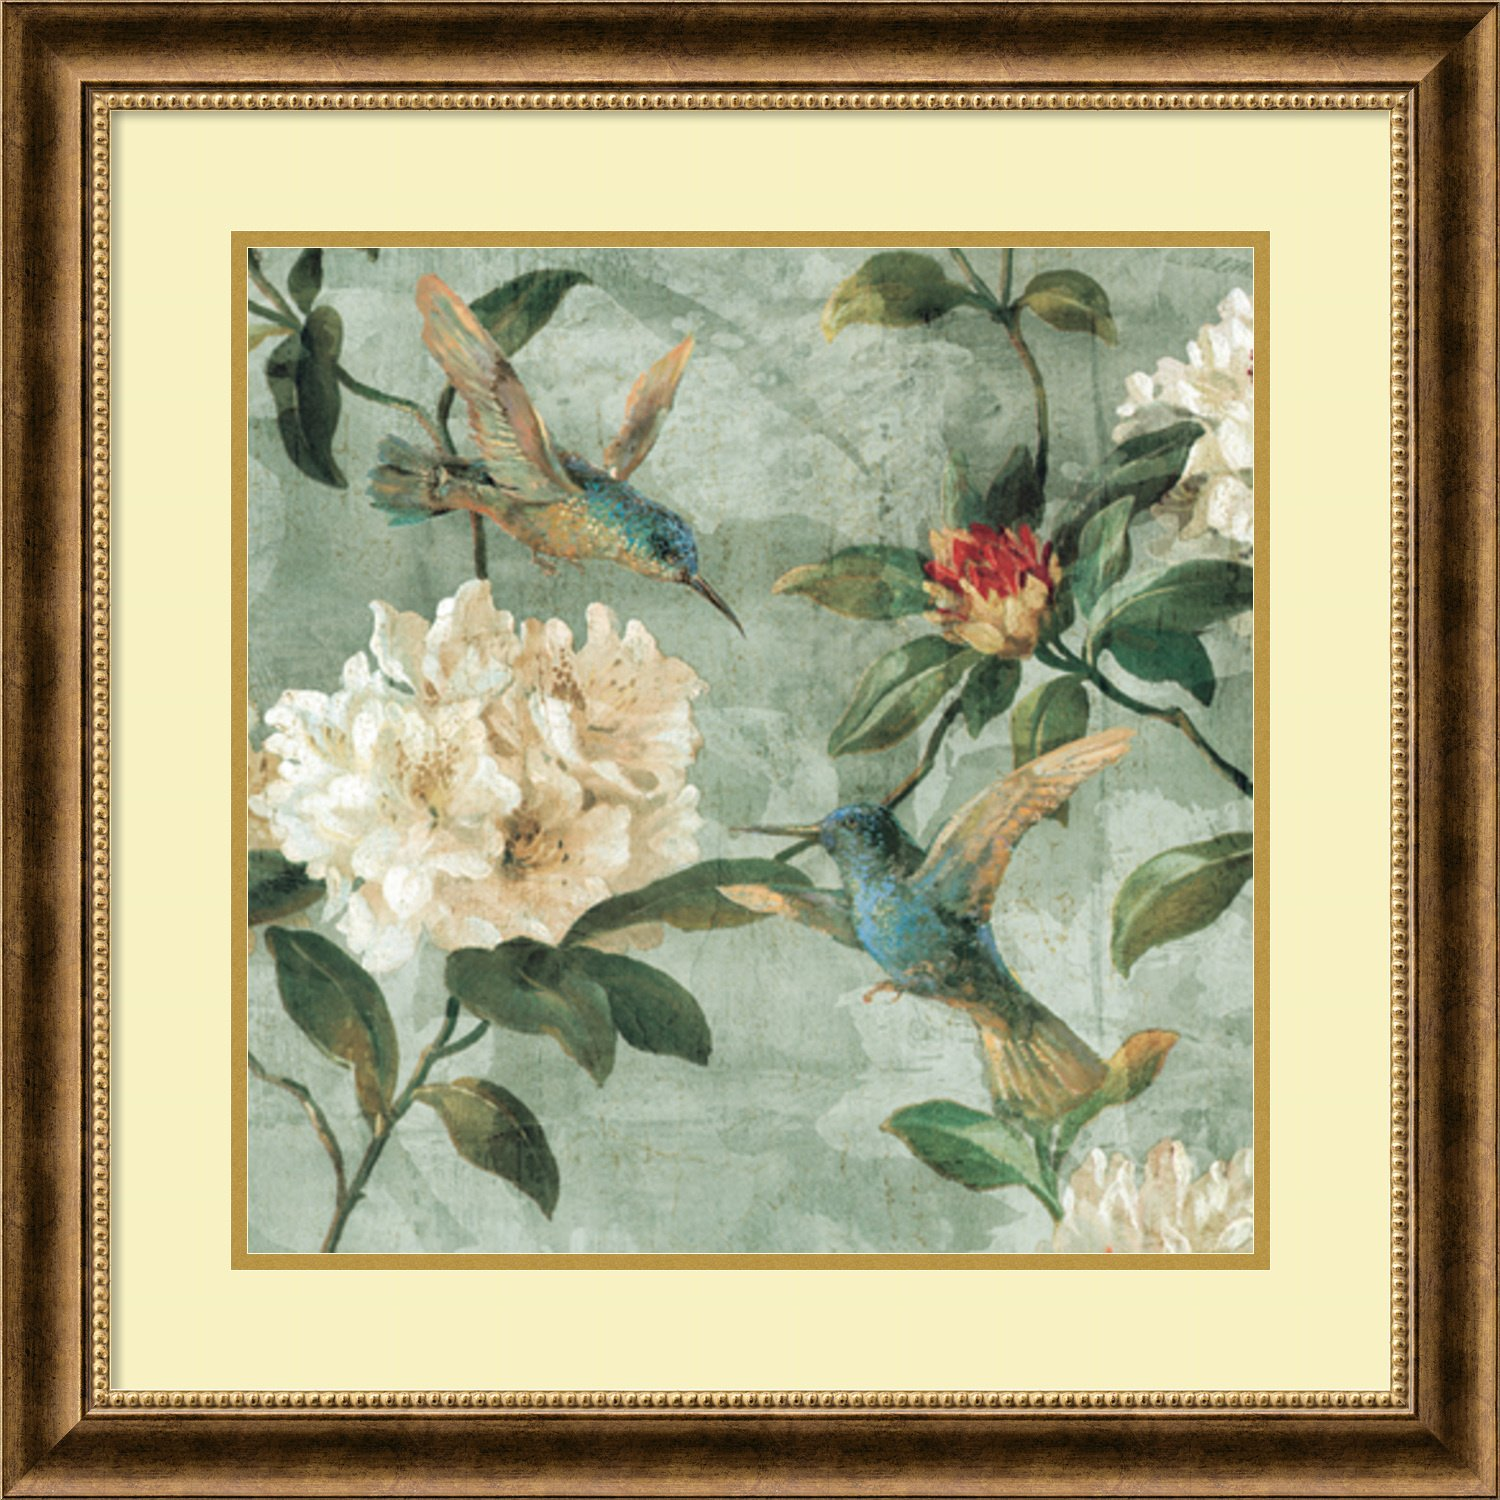 Framed Art Print, 'Birds of a Feather I' by Renee Campbell: Outer Size 29 x 29''